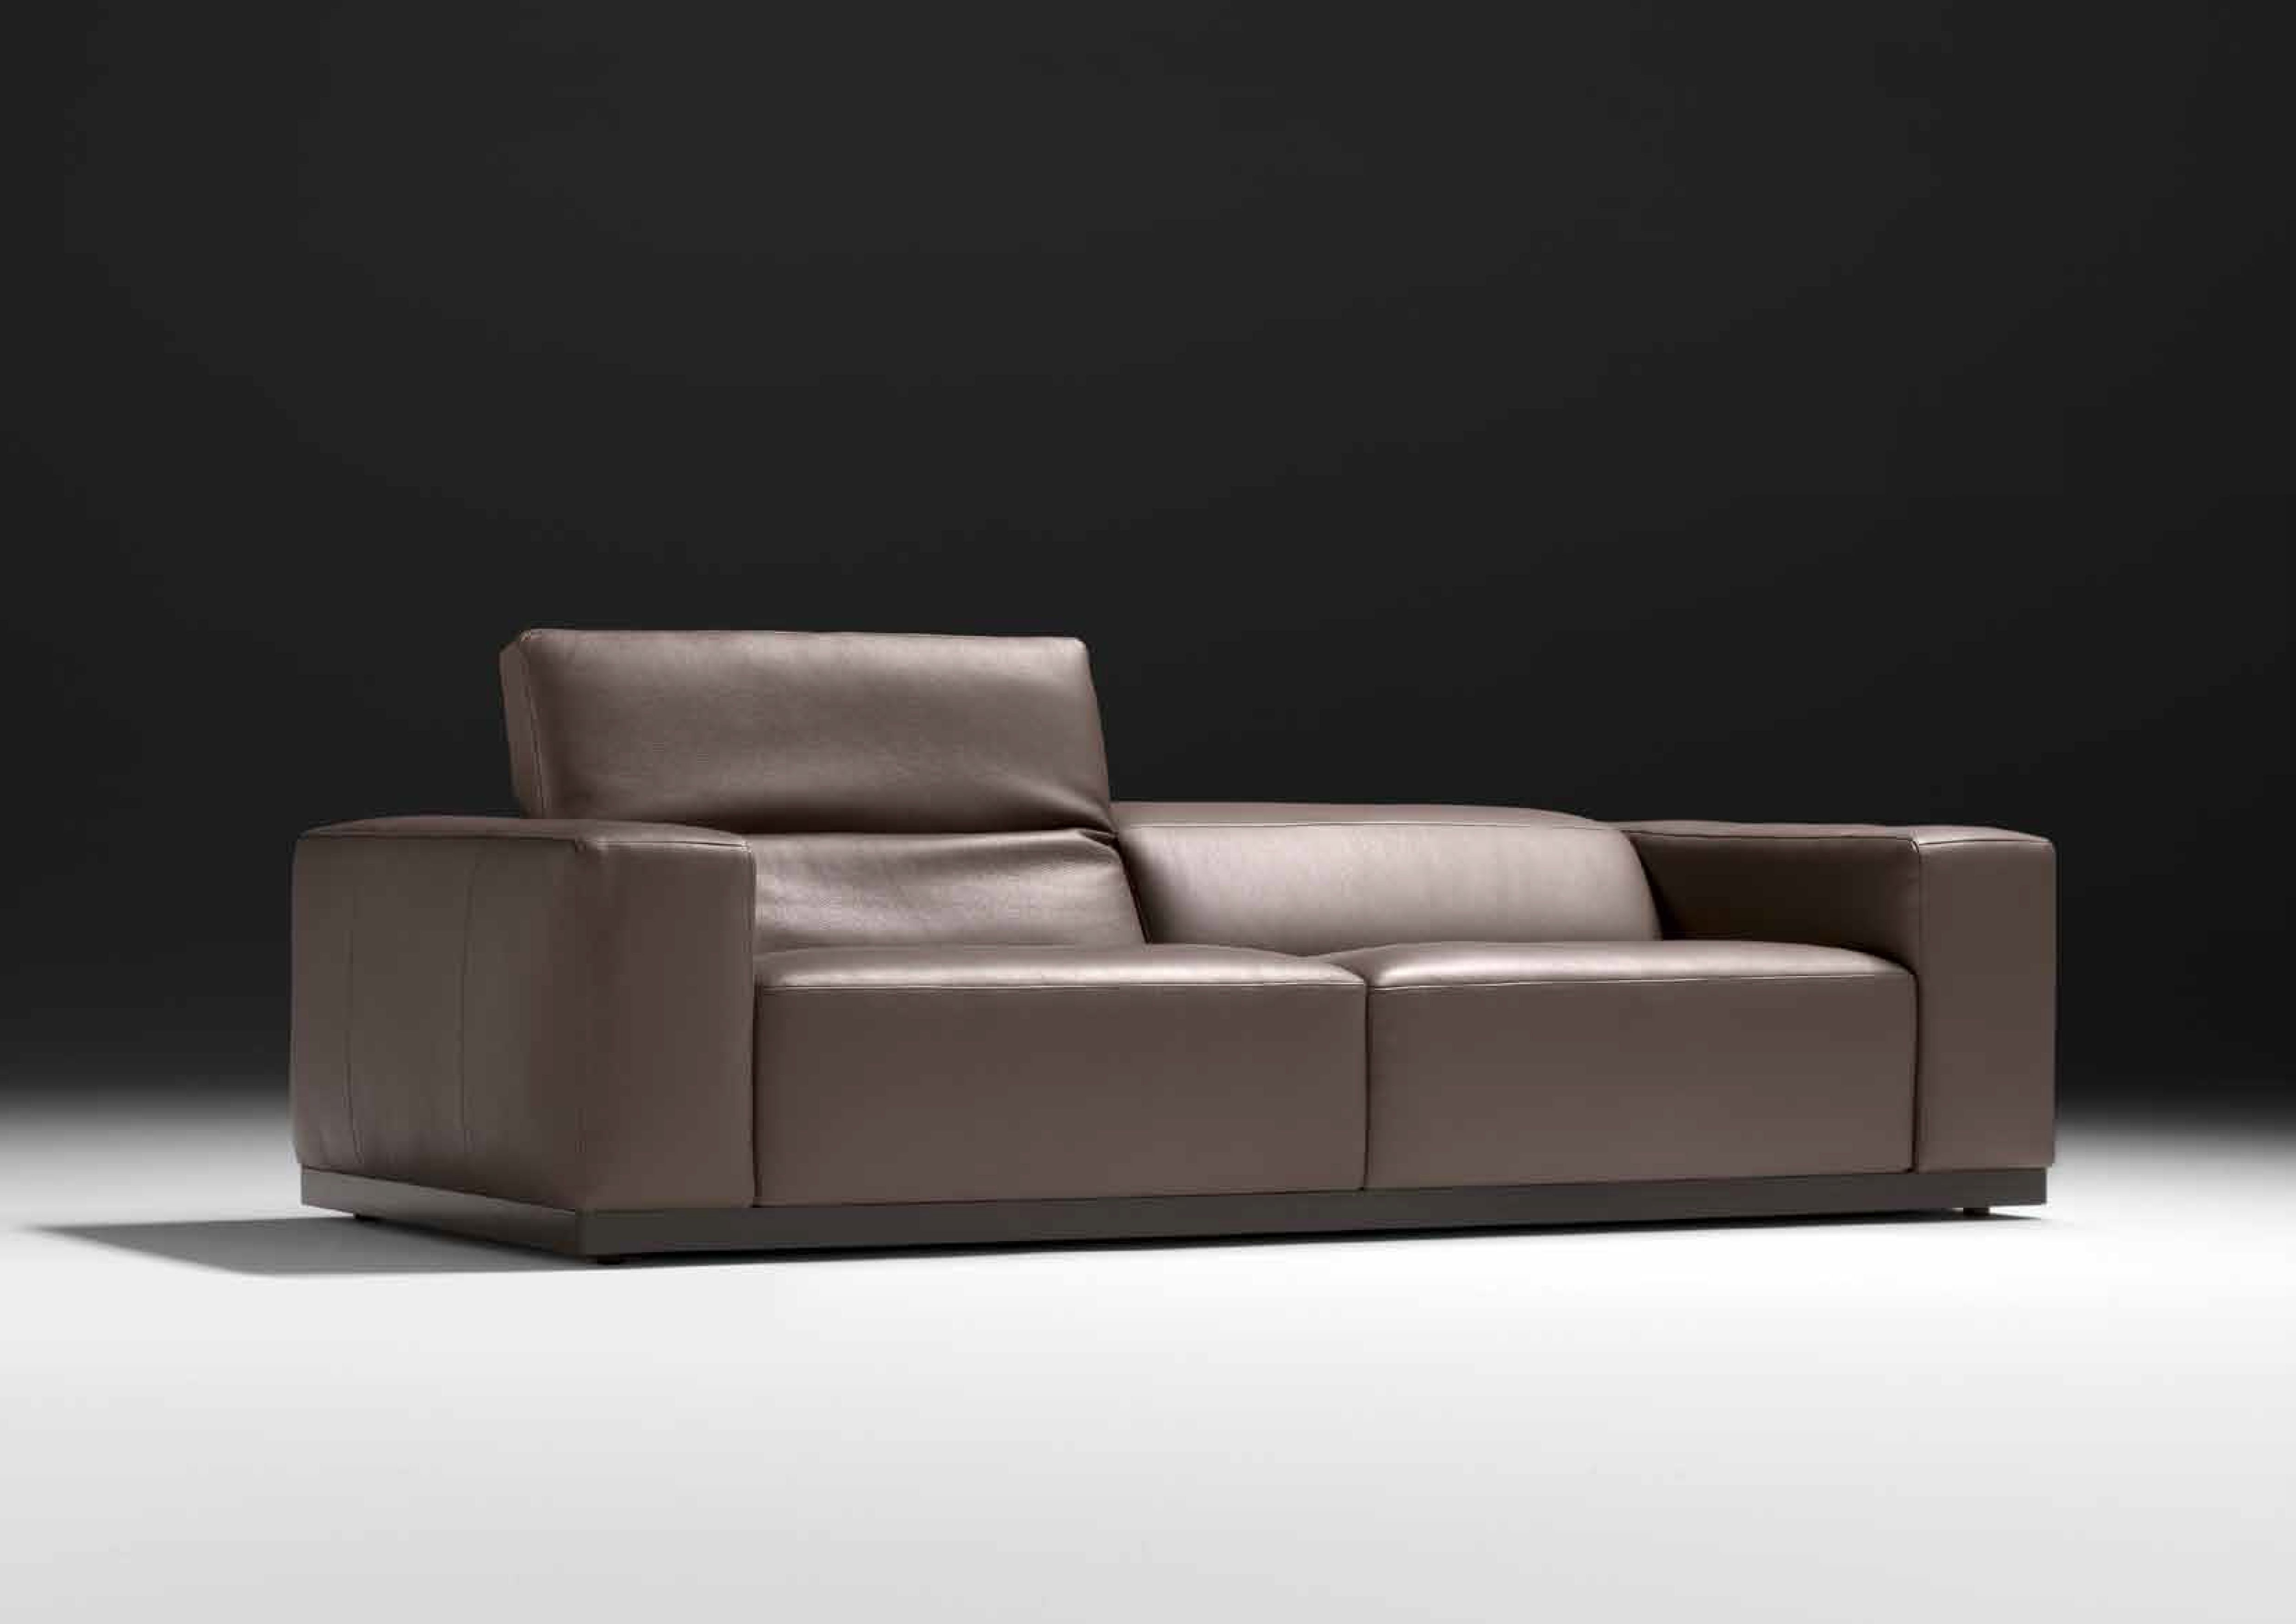 Fabio And Co Is Proud To Offer You 100 Genuine Italian Sofas Over 200 Exclusive Models To Choos Italian Furniture Modern Italian Leather Sofa Italian Sofa